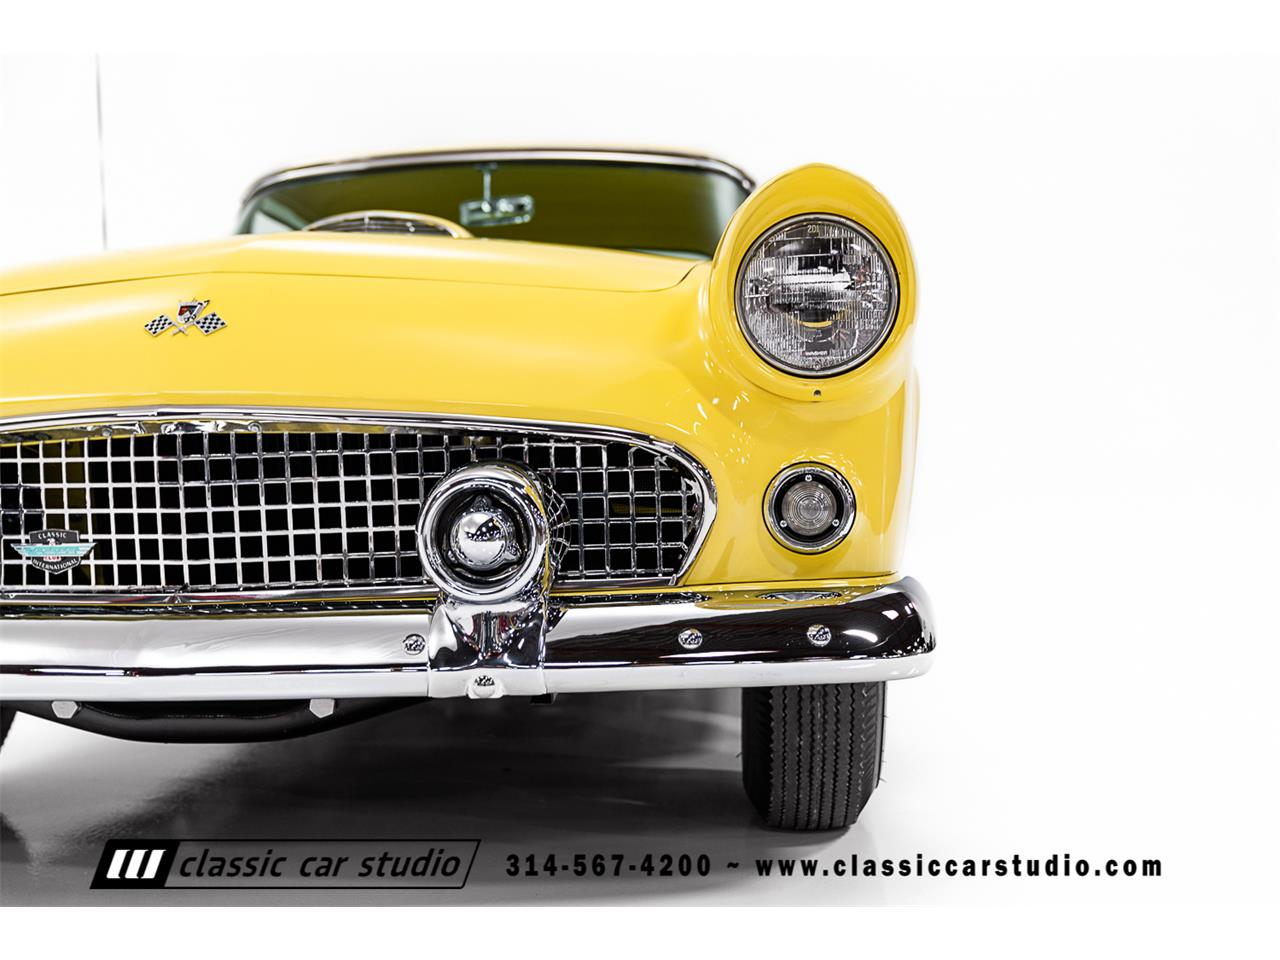 Large Picture of '55 Thunderbird located in SAINT LOUIS Missouri Auction Vehicle - PKP1